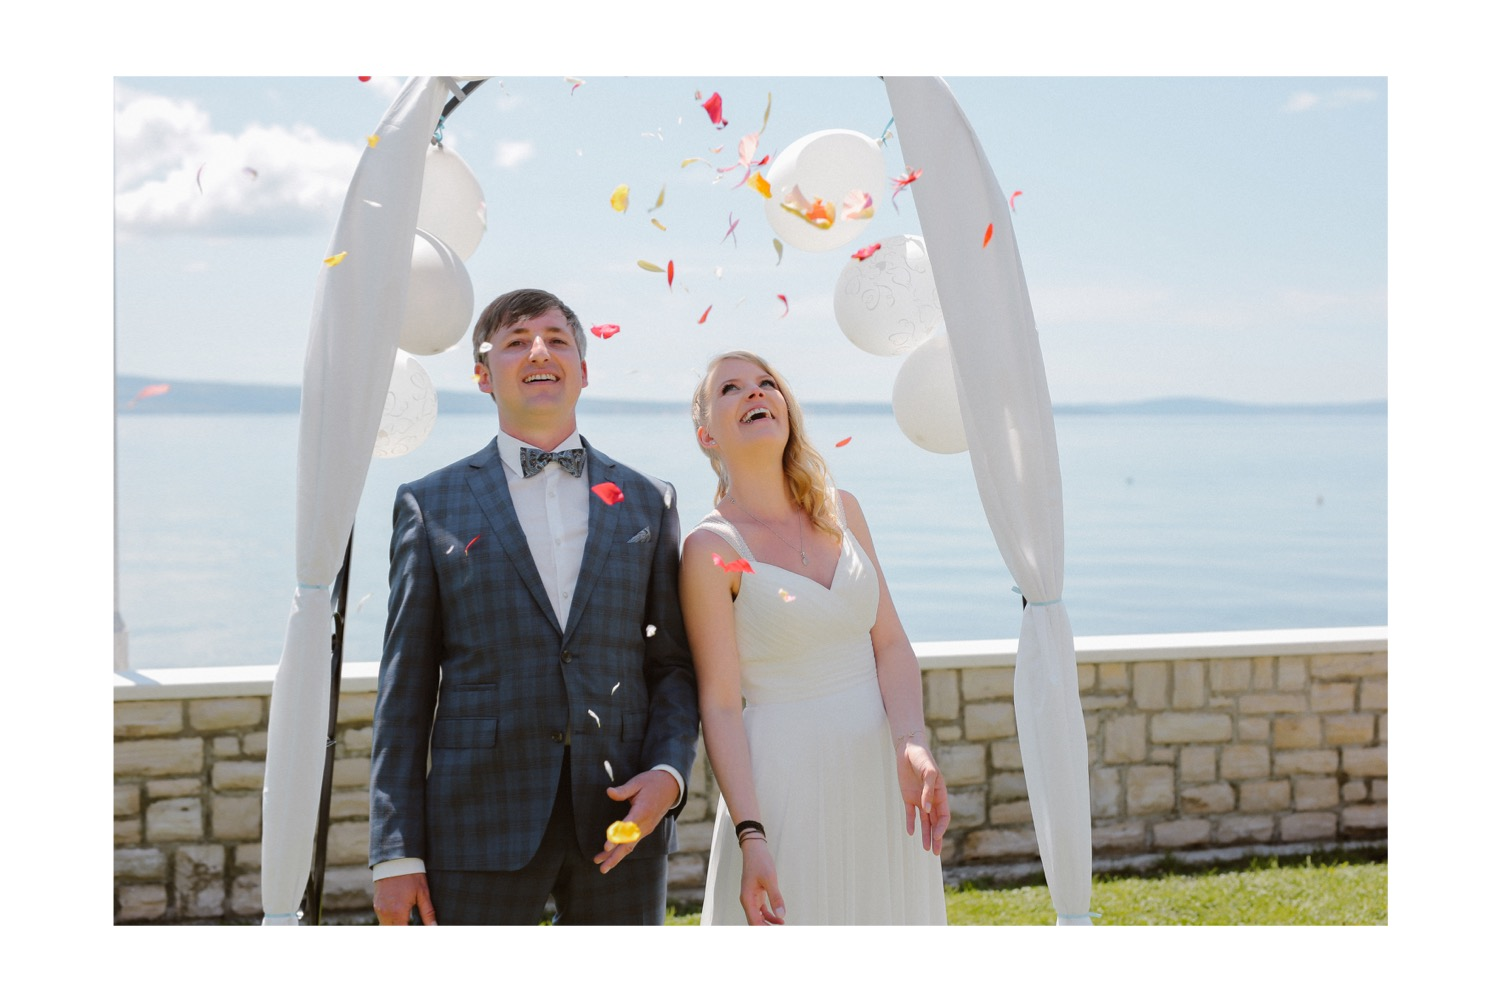 Croatia beach elopement hilke thomas love and ventures photography 32 | Croatia Elopement Photographer and Videographer